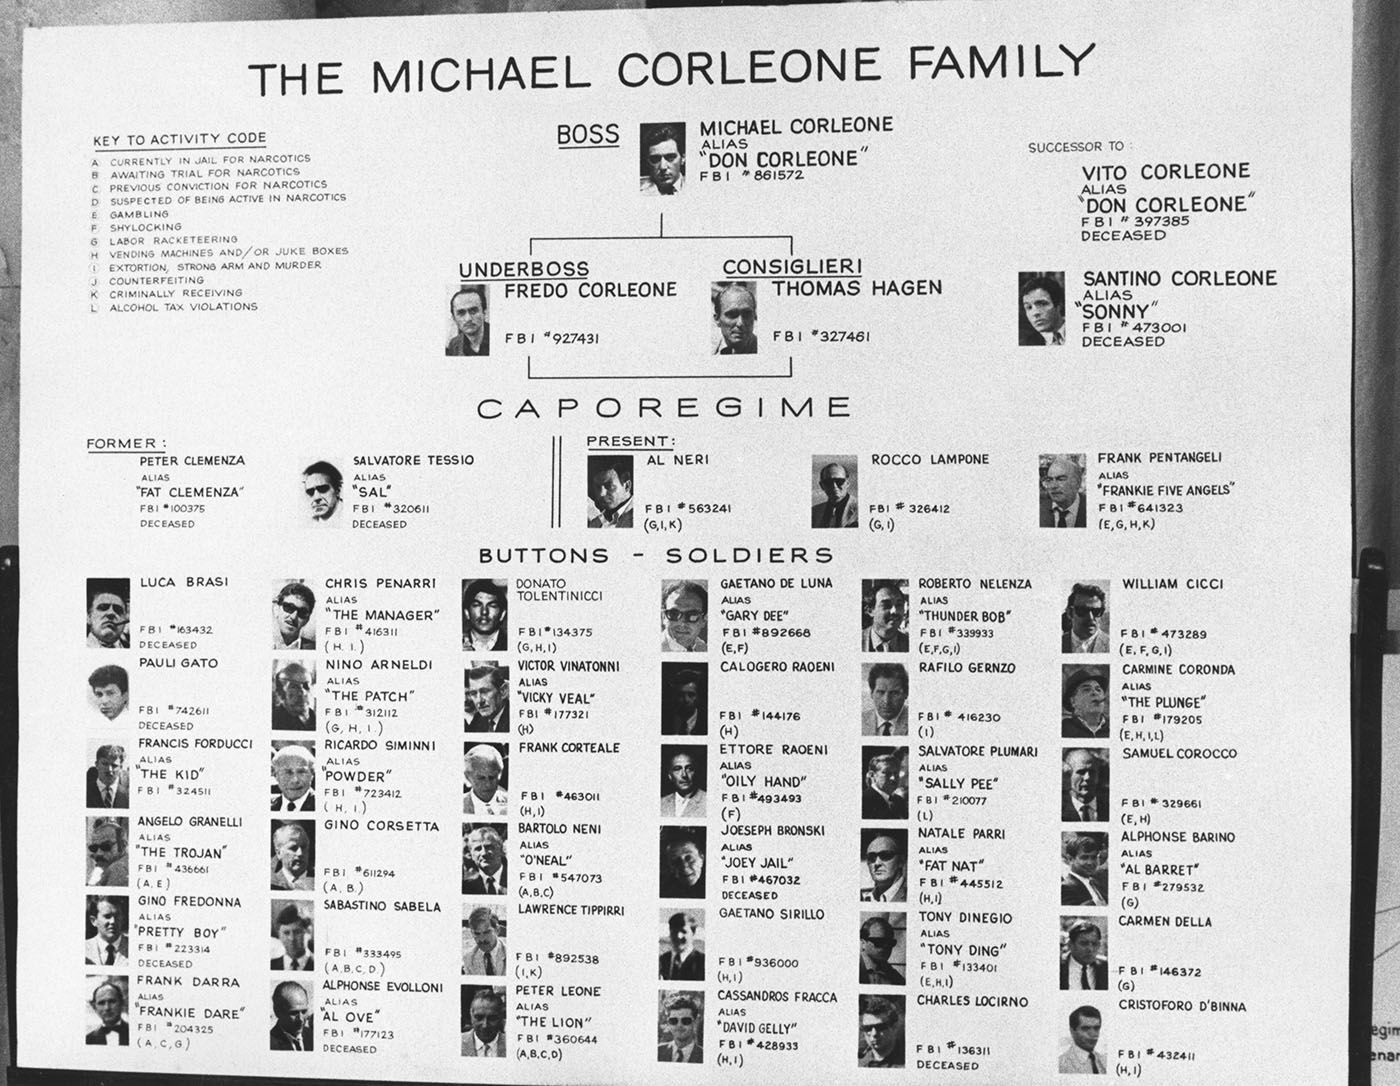 La Familia Corleone Libro The Godfather Piratas Truhanes Mafiosos Y Otras Rarezas The